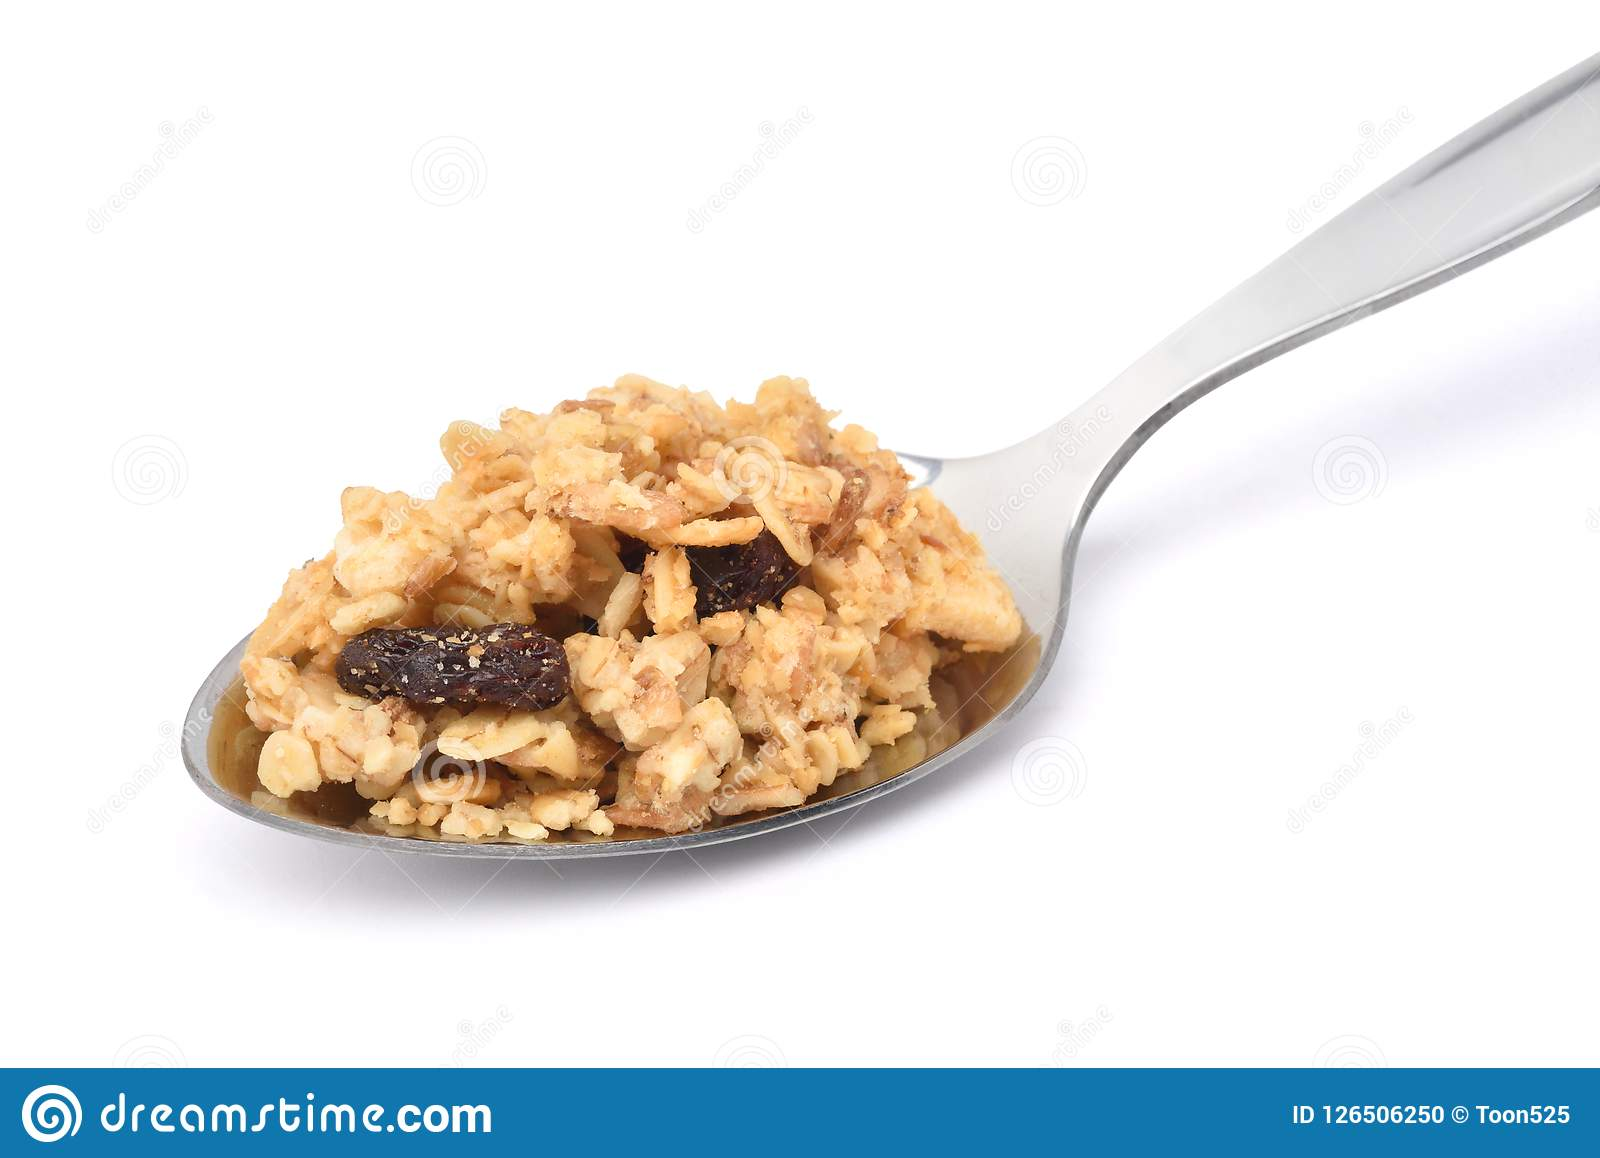 Crunchy oat granola cereal with dried fruits in stainless spoon